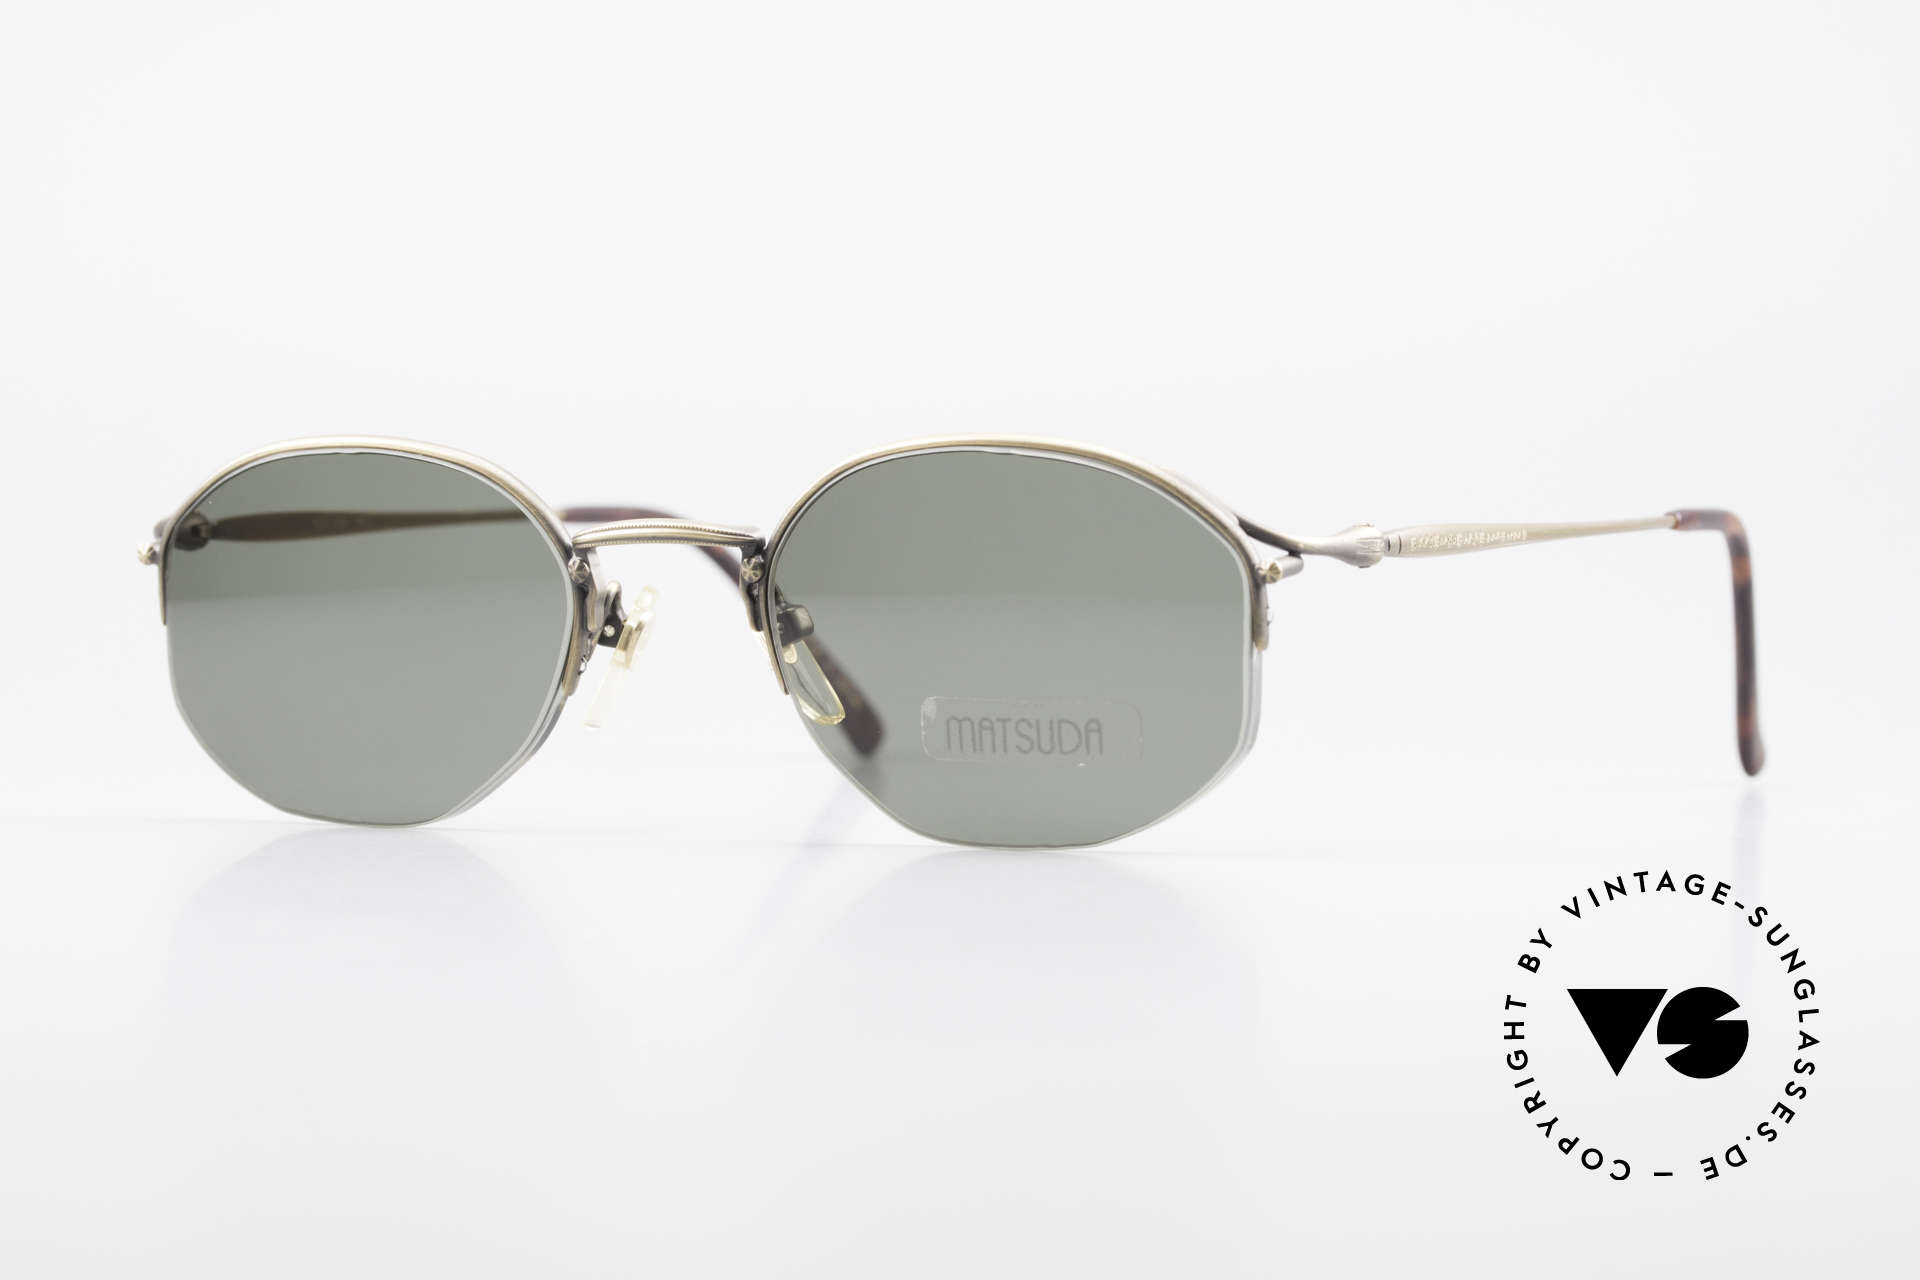 Matsuda 2855 Extraordinary Vintage Frame, vintage Matsuda designer sunglasses from the 90s, Made for Men and Women